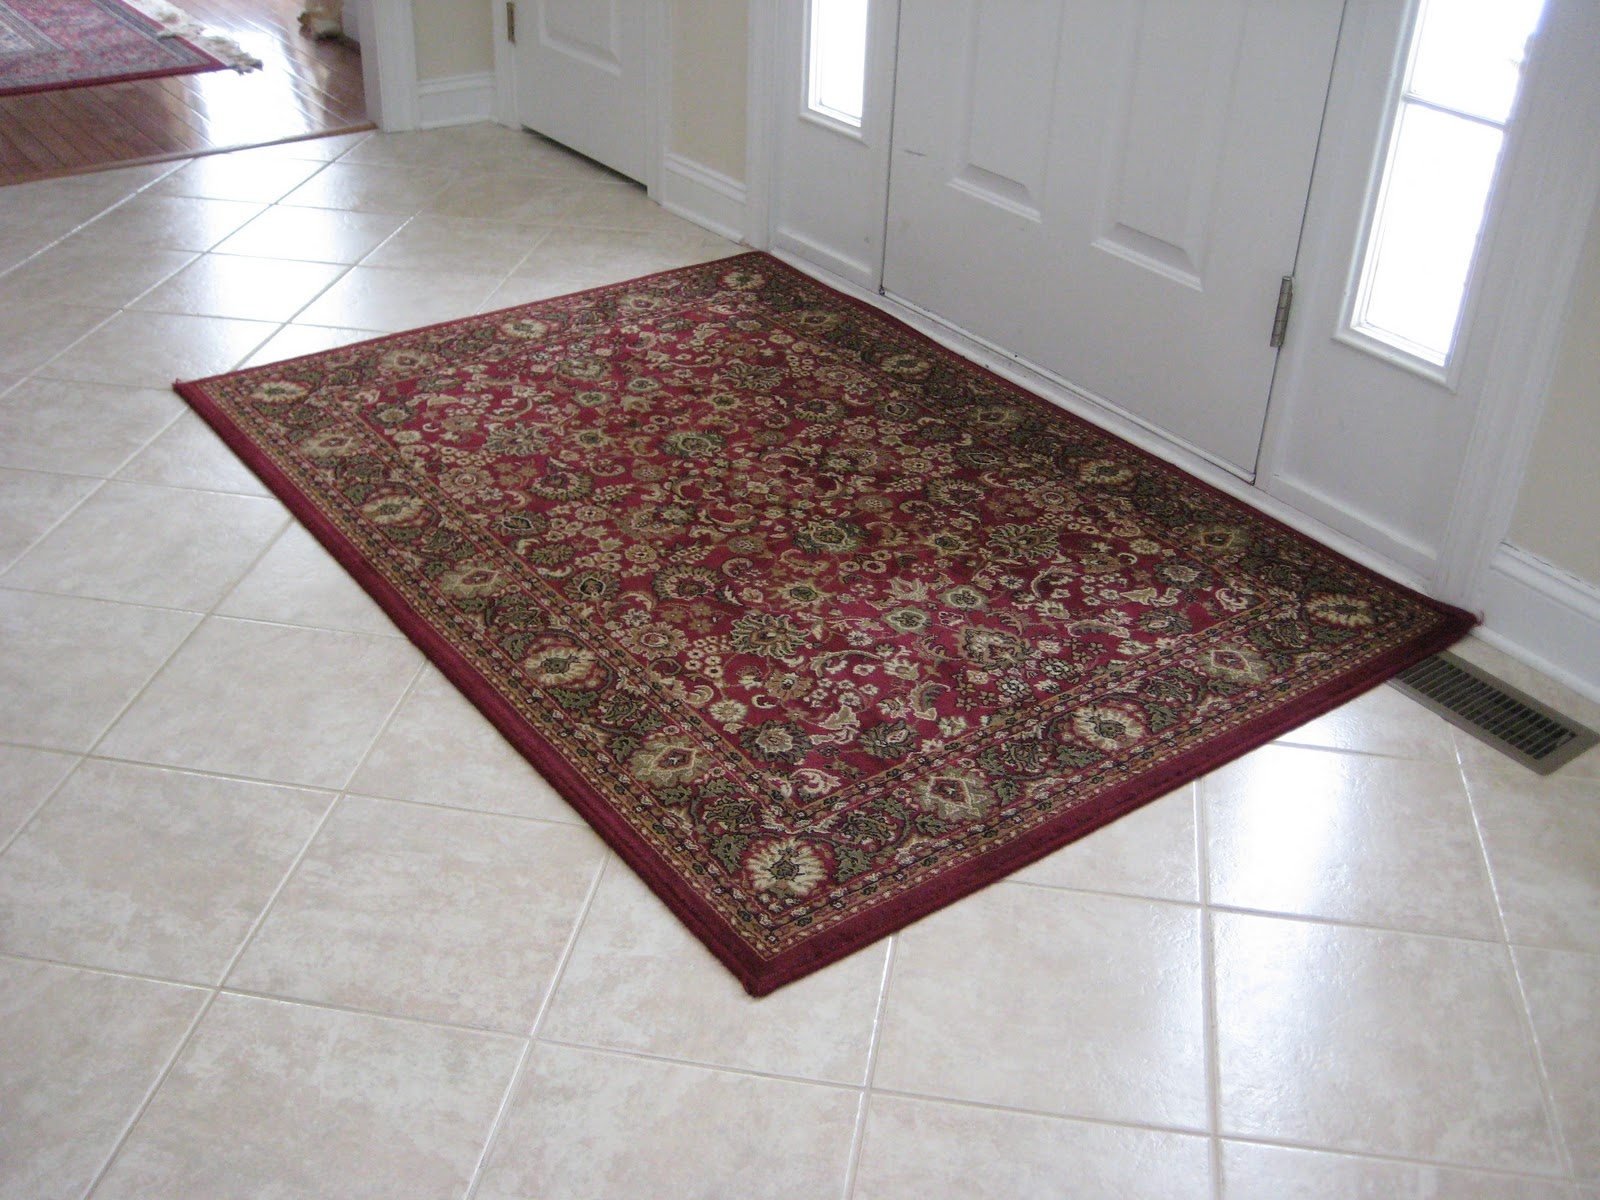 Area Rug in the foyer